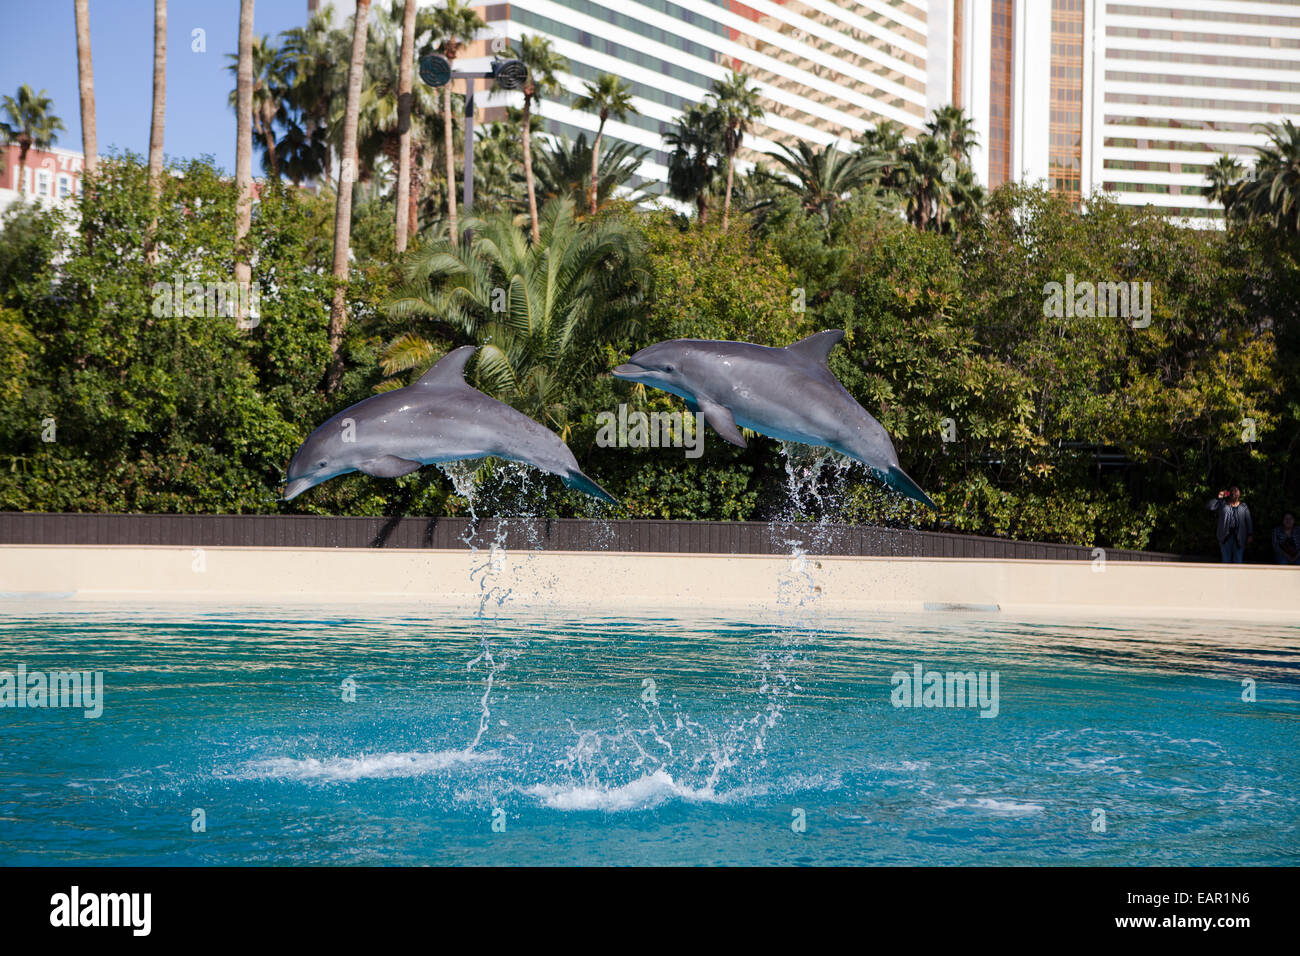 Siegfried And Roy 39 S Secret Garden And Dolphin Habitat At Mirage Stock Photo Royalty Free Image